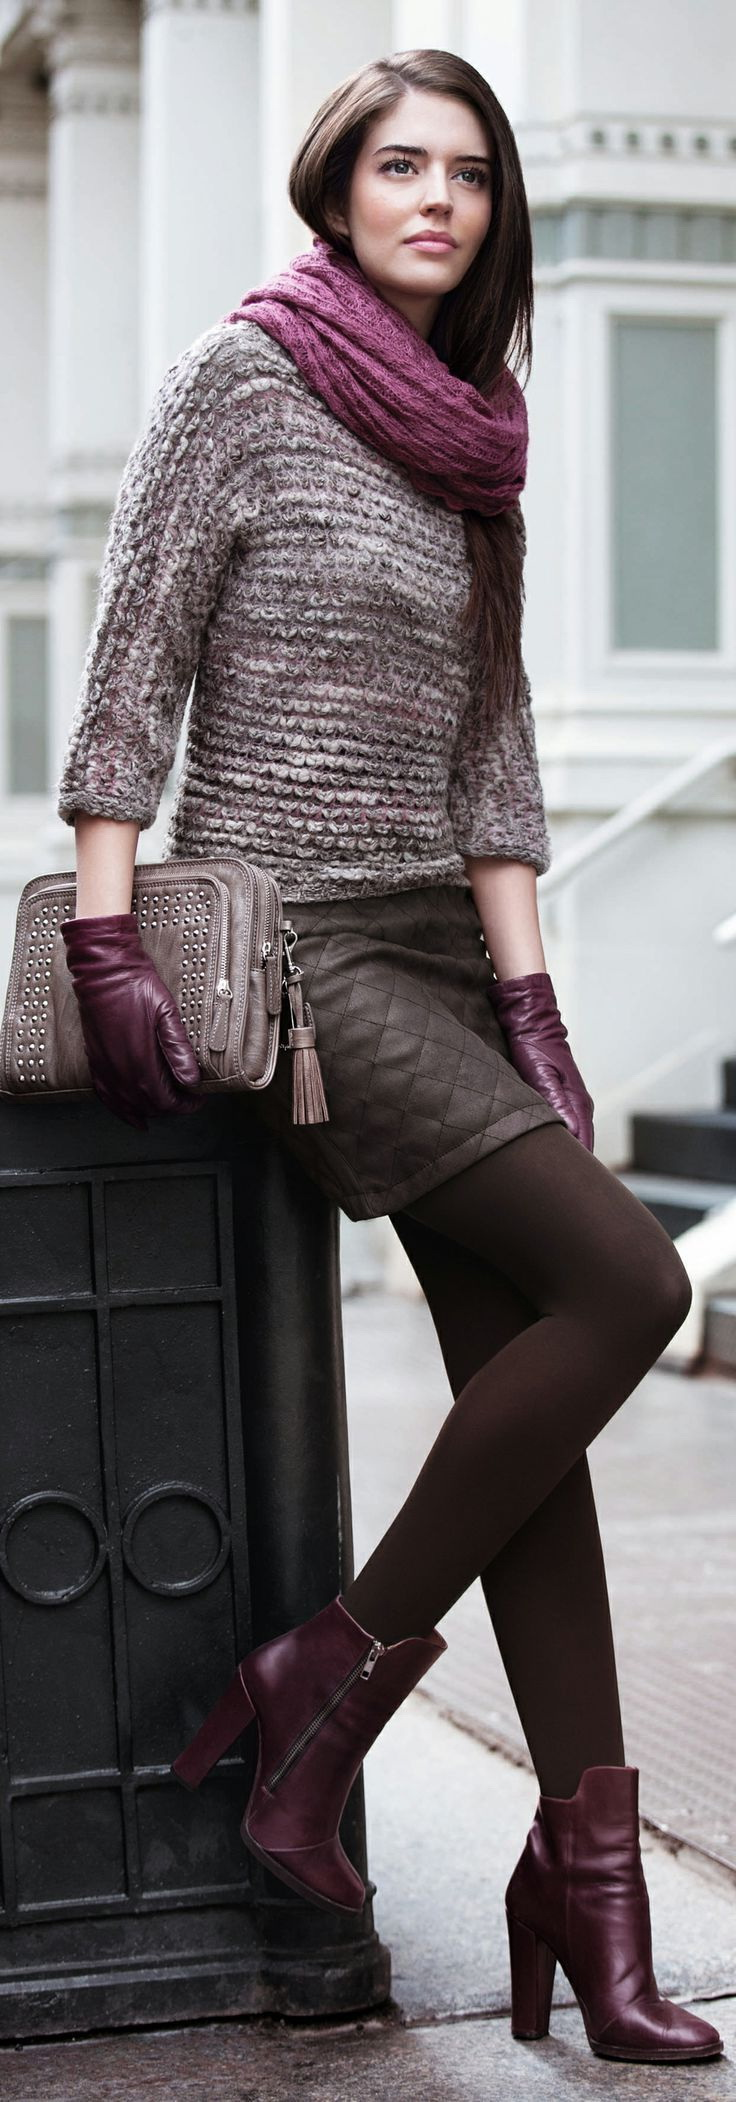 how-to-style-brown-mini-skirt-burgundy-scarf-brun-brown-tights-gloves-burgundy-shoe-booties-fall-winter-fashion-lunch.jpg